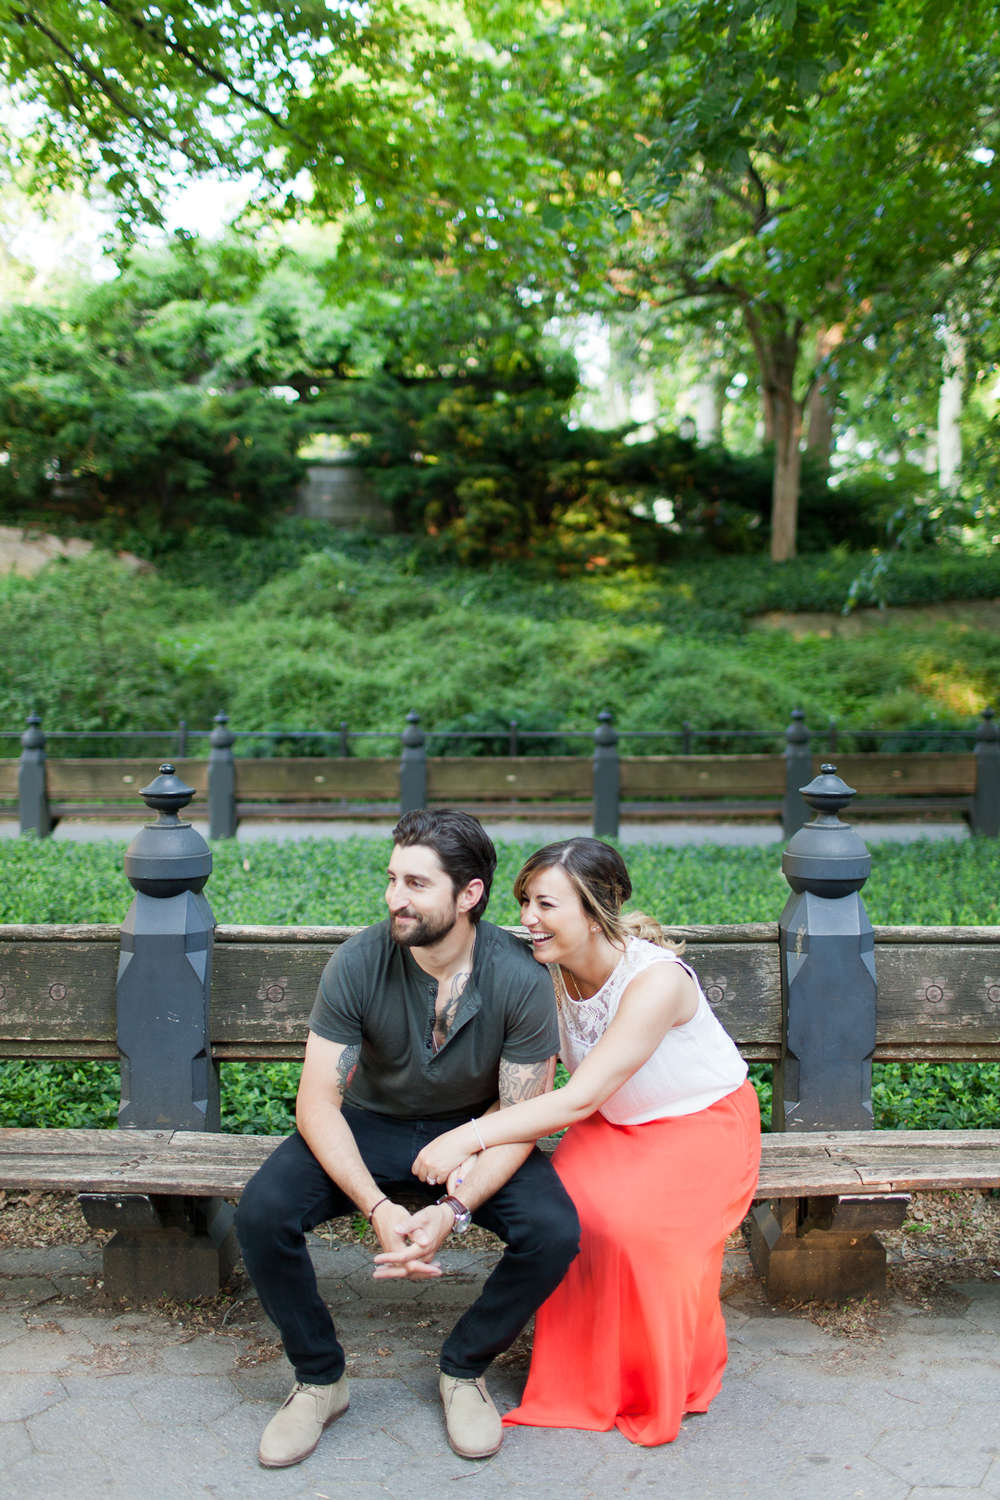 Melissa Kruse Photography - Eileen & Kenny Engagement Photos-111.jpg